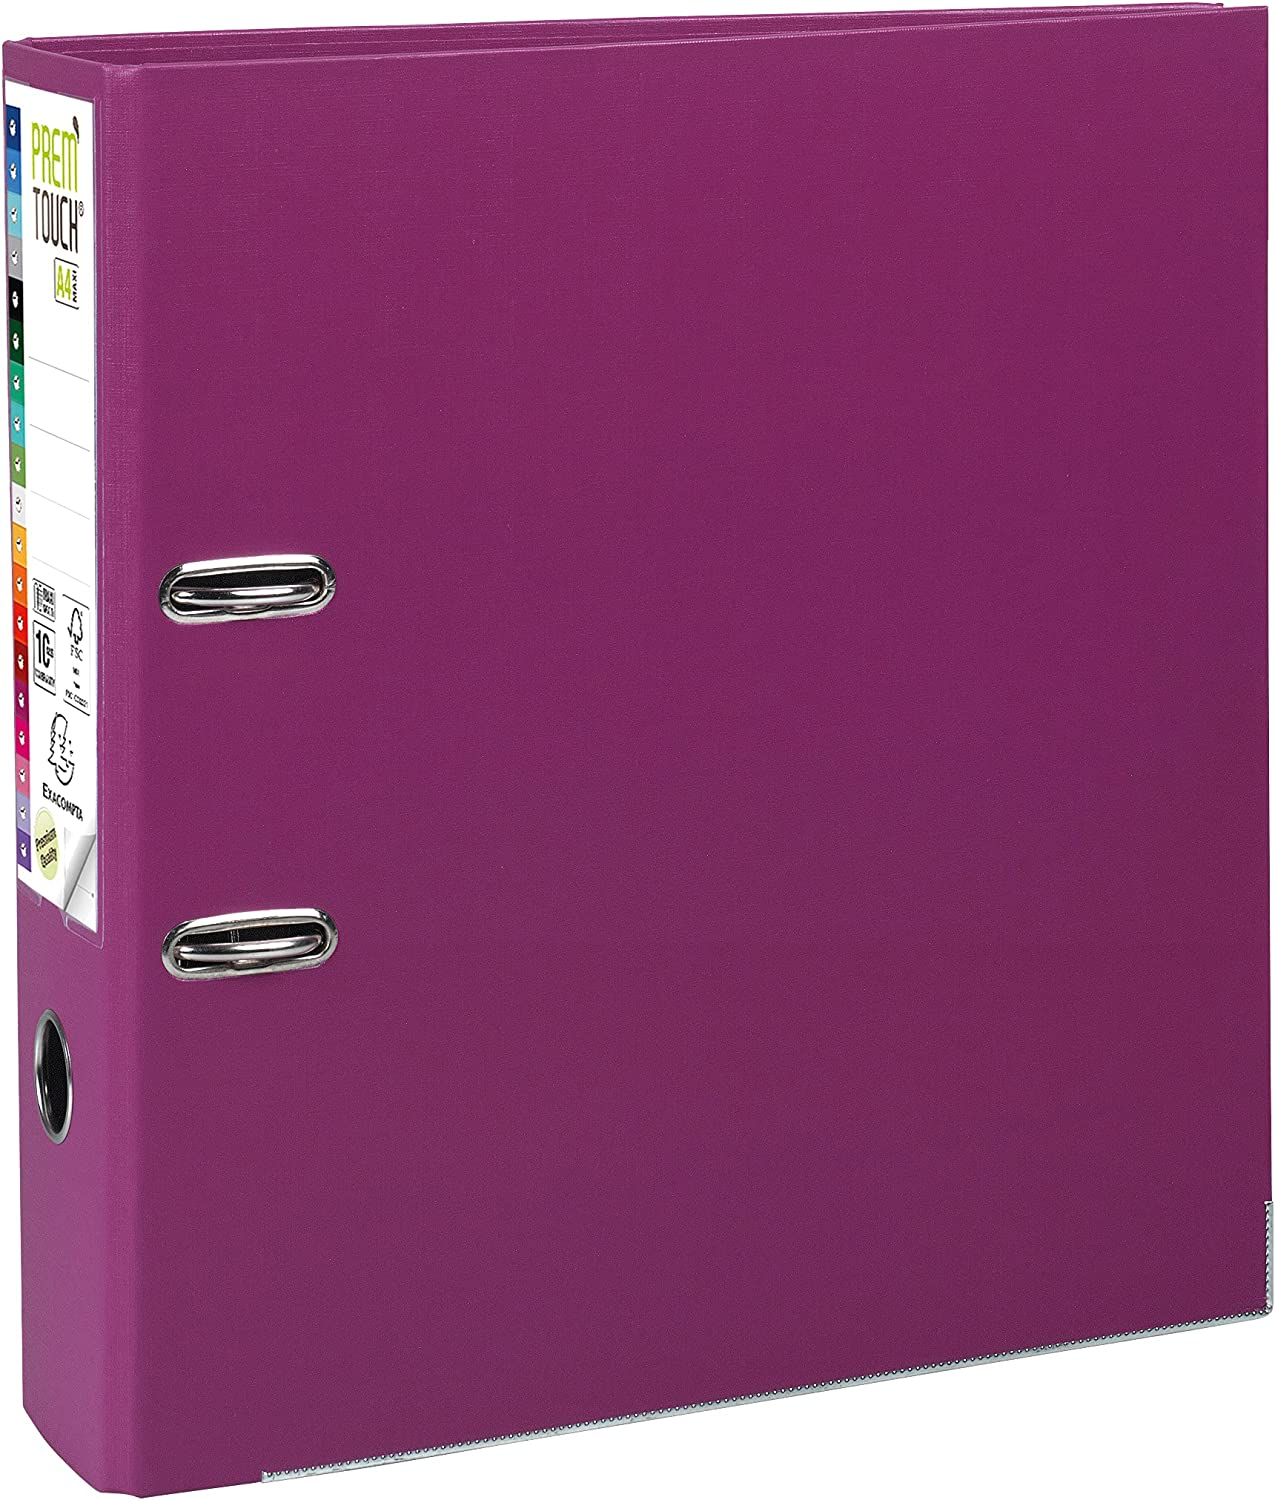 Exacompta Prem'Touch PP Lever Arch File - A4 Long-awaited 80 Spine mm Maxi Minneapolis Mall